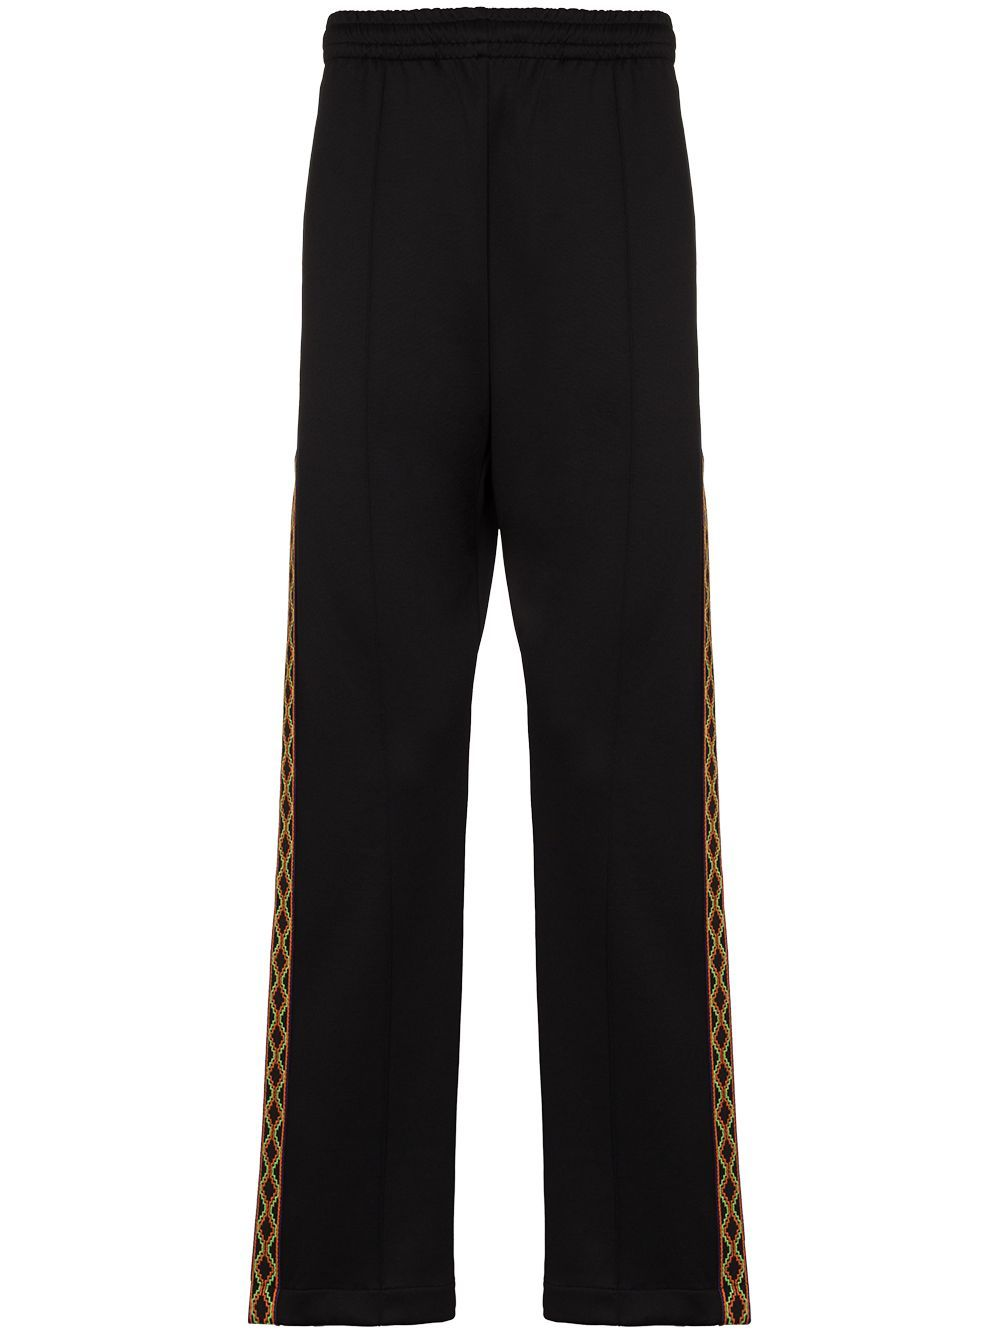 MARCELO BURLON Folk Tape Track Pants Black - Maison De Fashion